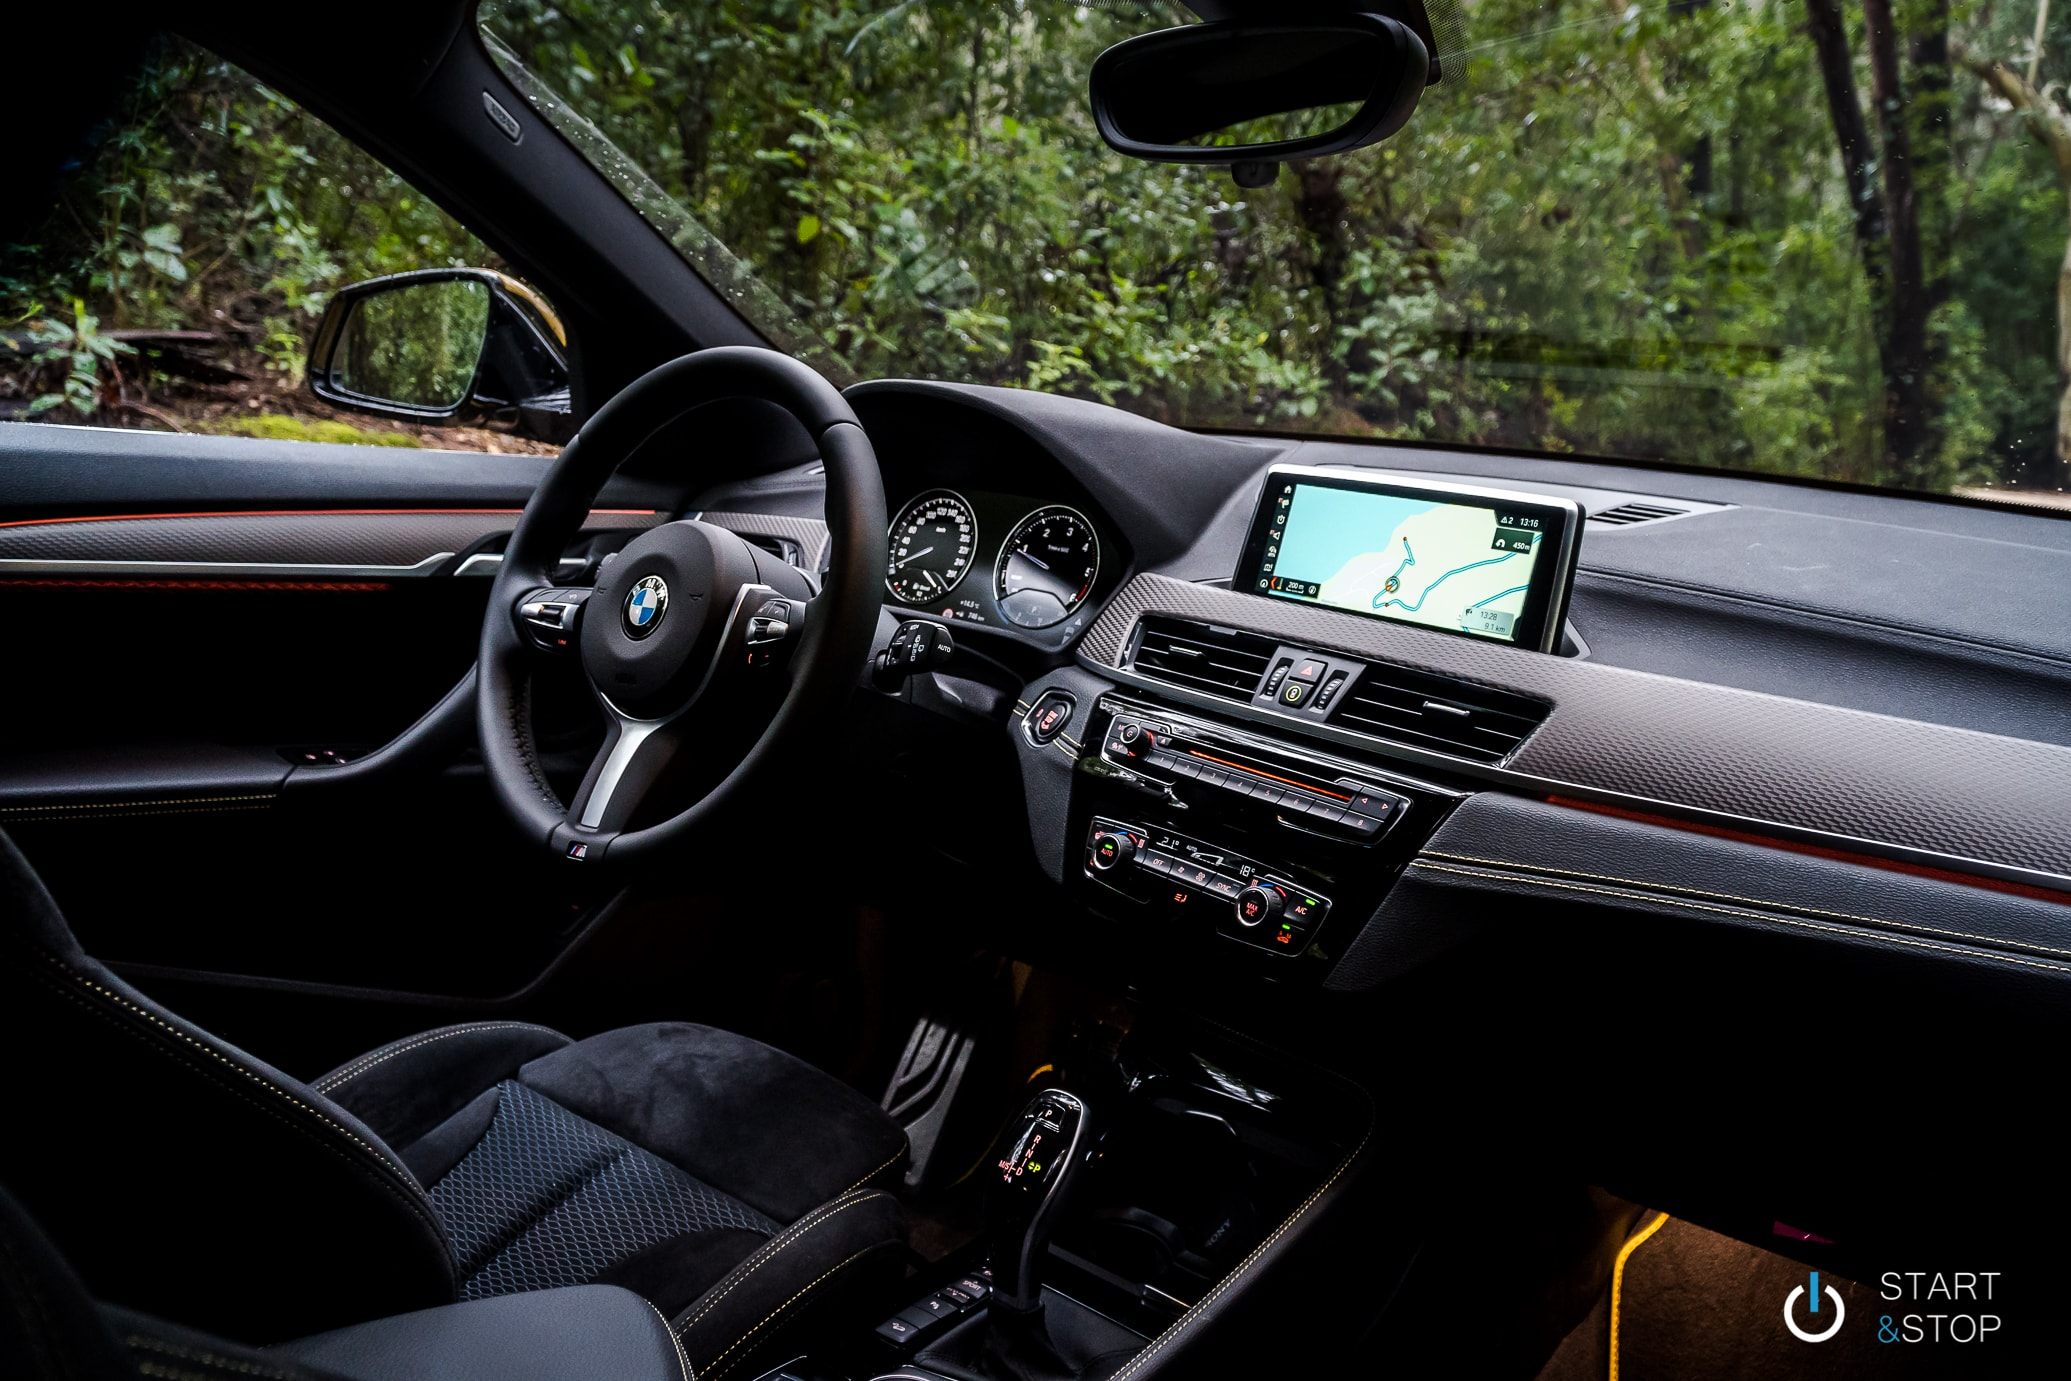 essai du suv audacieux bmw x2 sur les routes du portugal. Black Bedroom Furniture Sets. Home Design Ideas